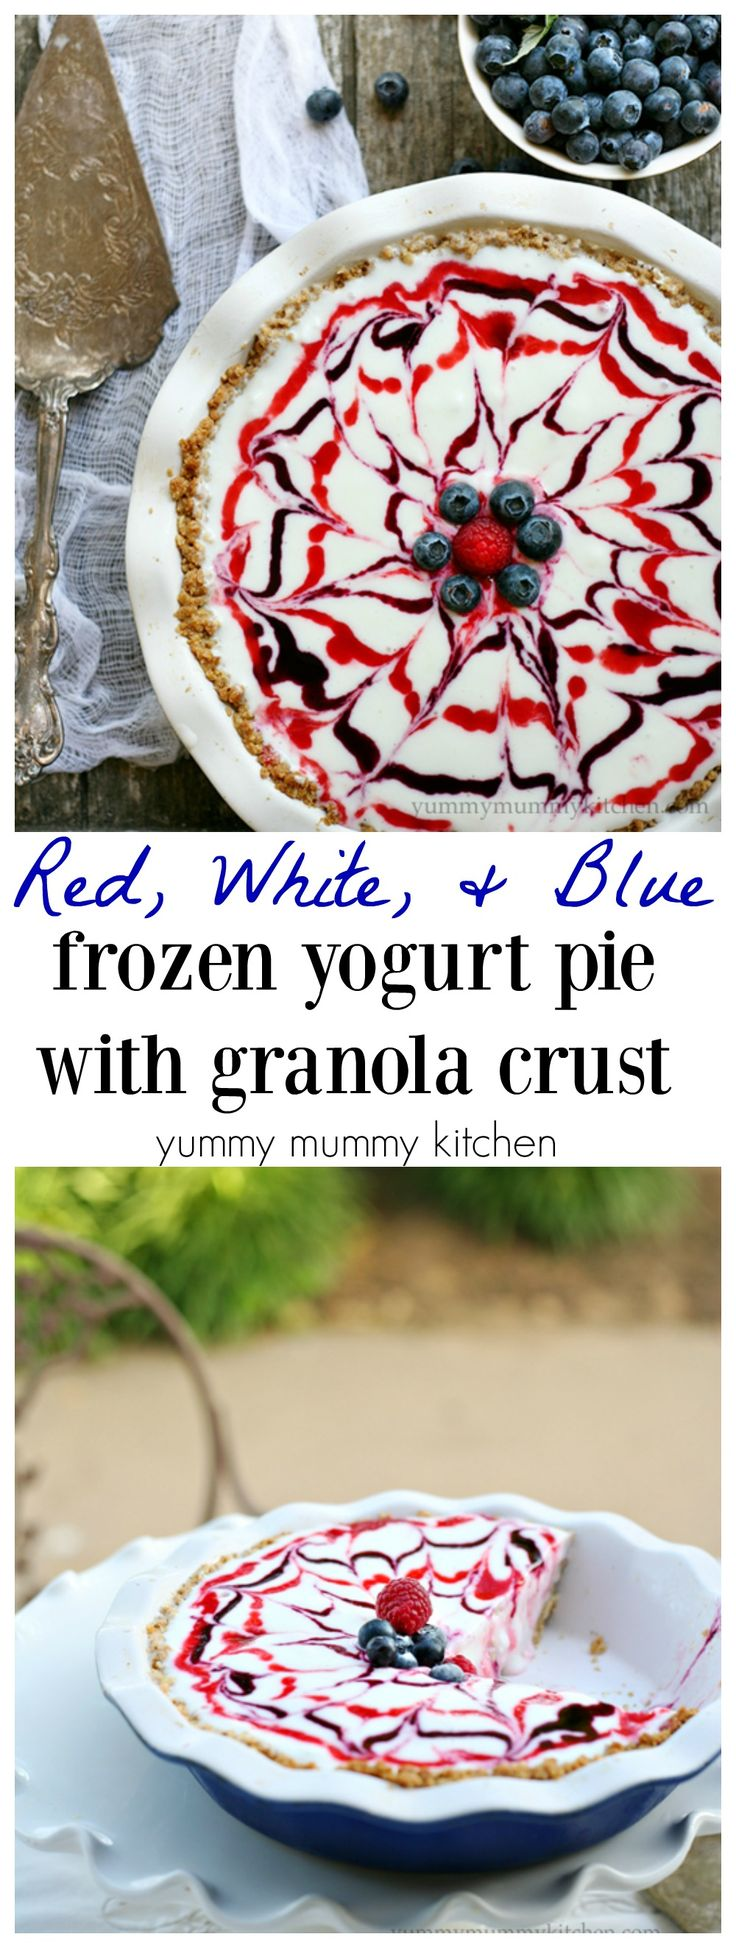 Red, White, and Blue Pie made with berry sauces and Granola Crust. We love this pie for Memorial Day or 4th of July! The crunchy crust is so tasty!